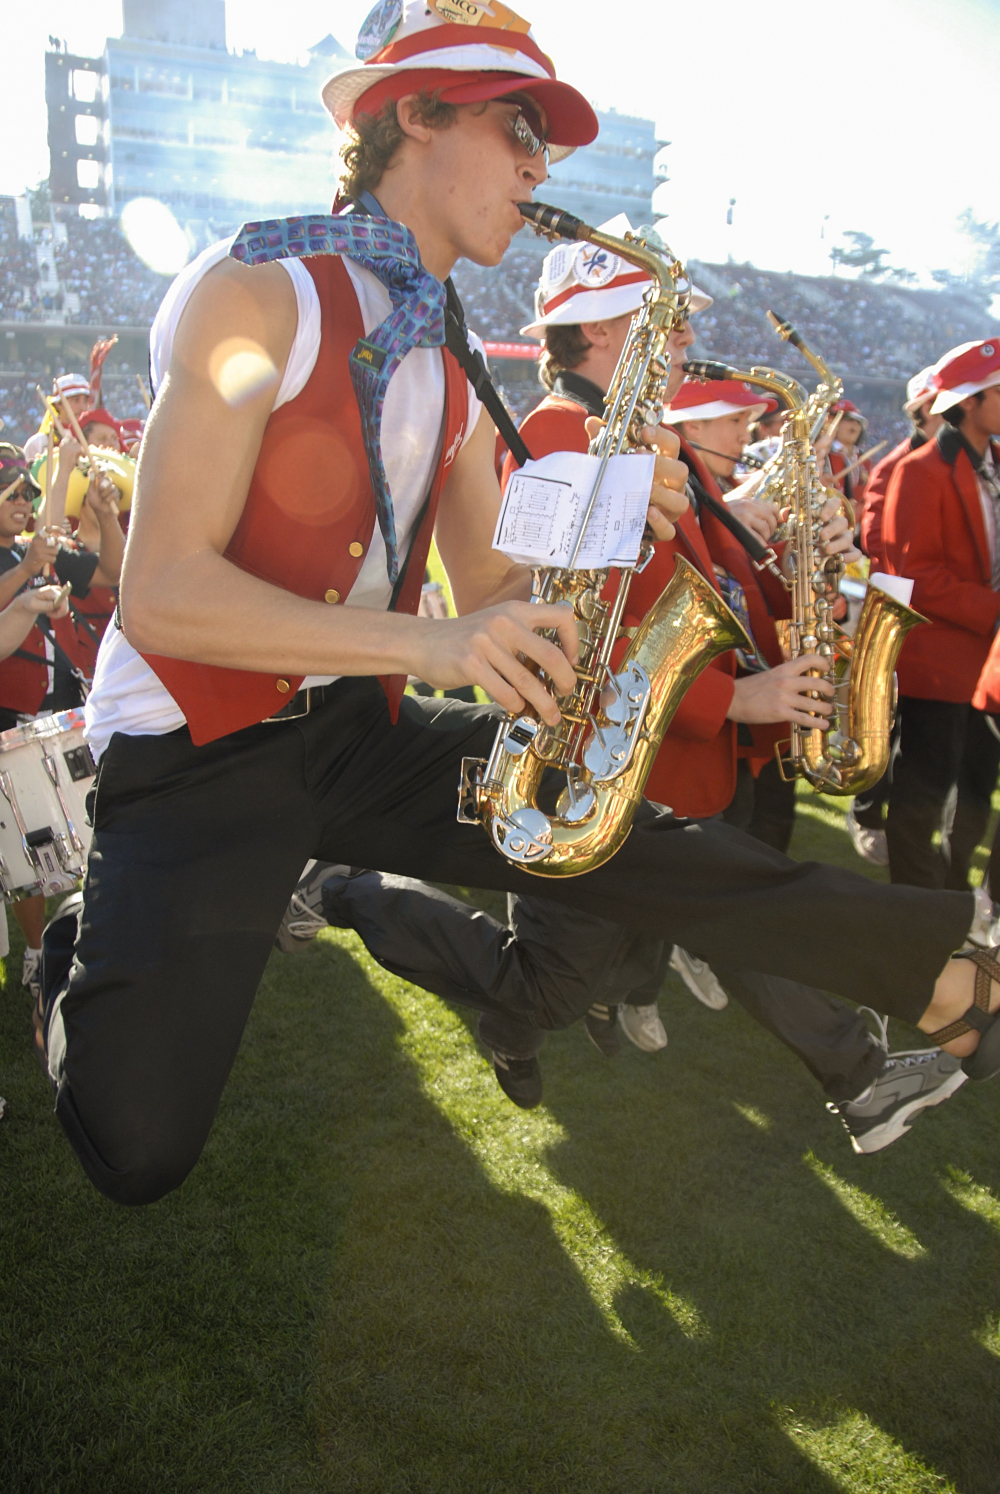 Sax players jumping with their horns